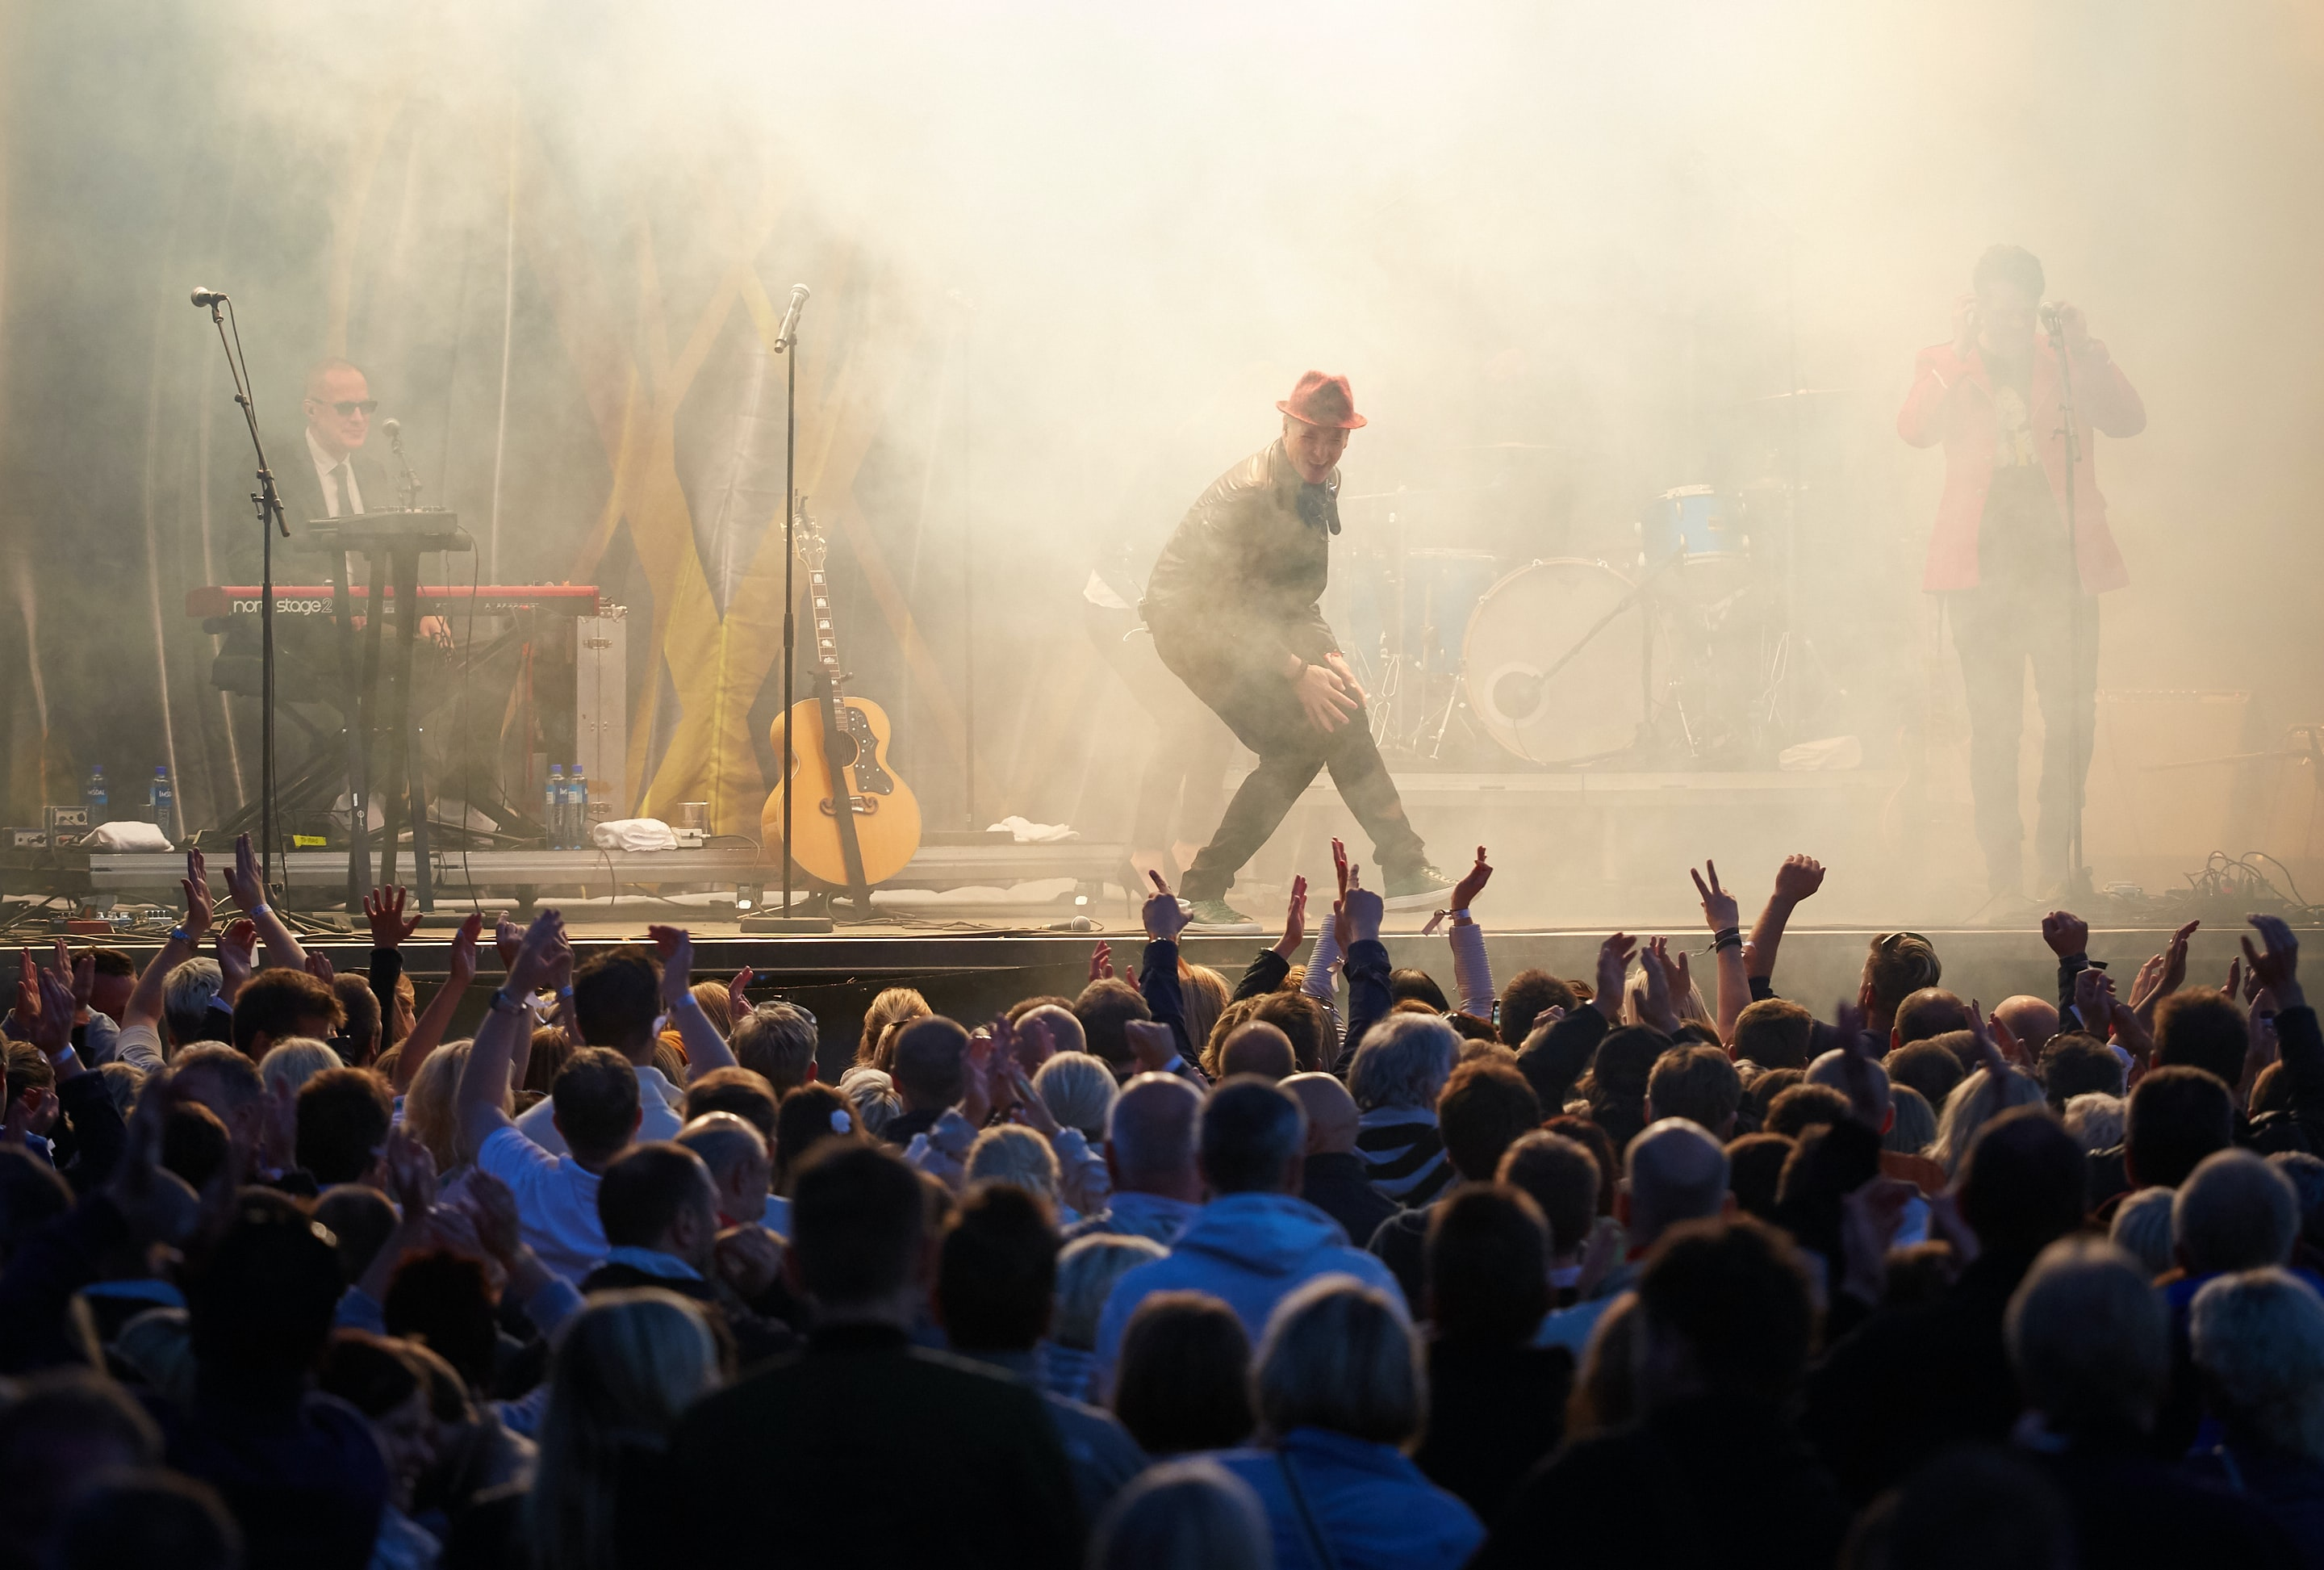 man on stage with crowd